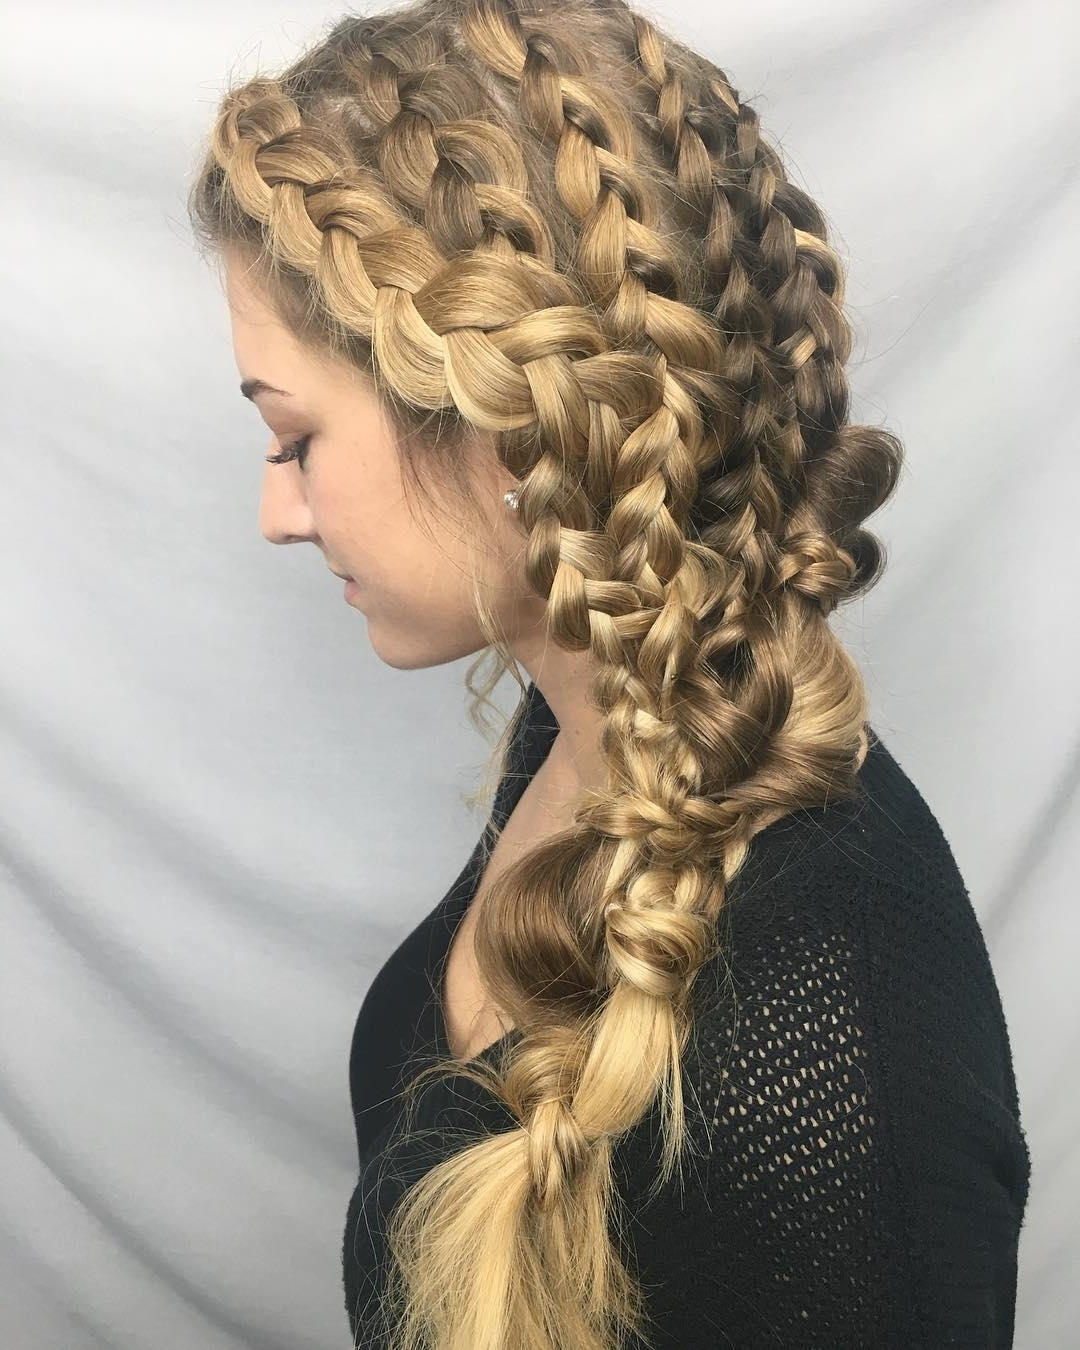 Latest Intricate Boxer Braids Hairstyles Throughout 60 Best Braids, Braid Styles, Braided Hairstyles For Women  (View 8 of 15)